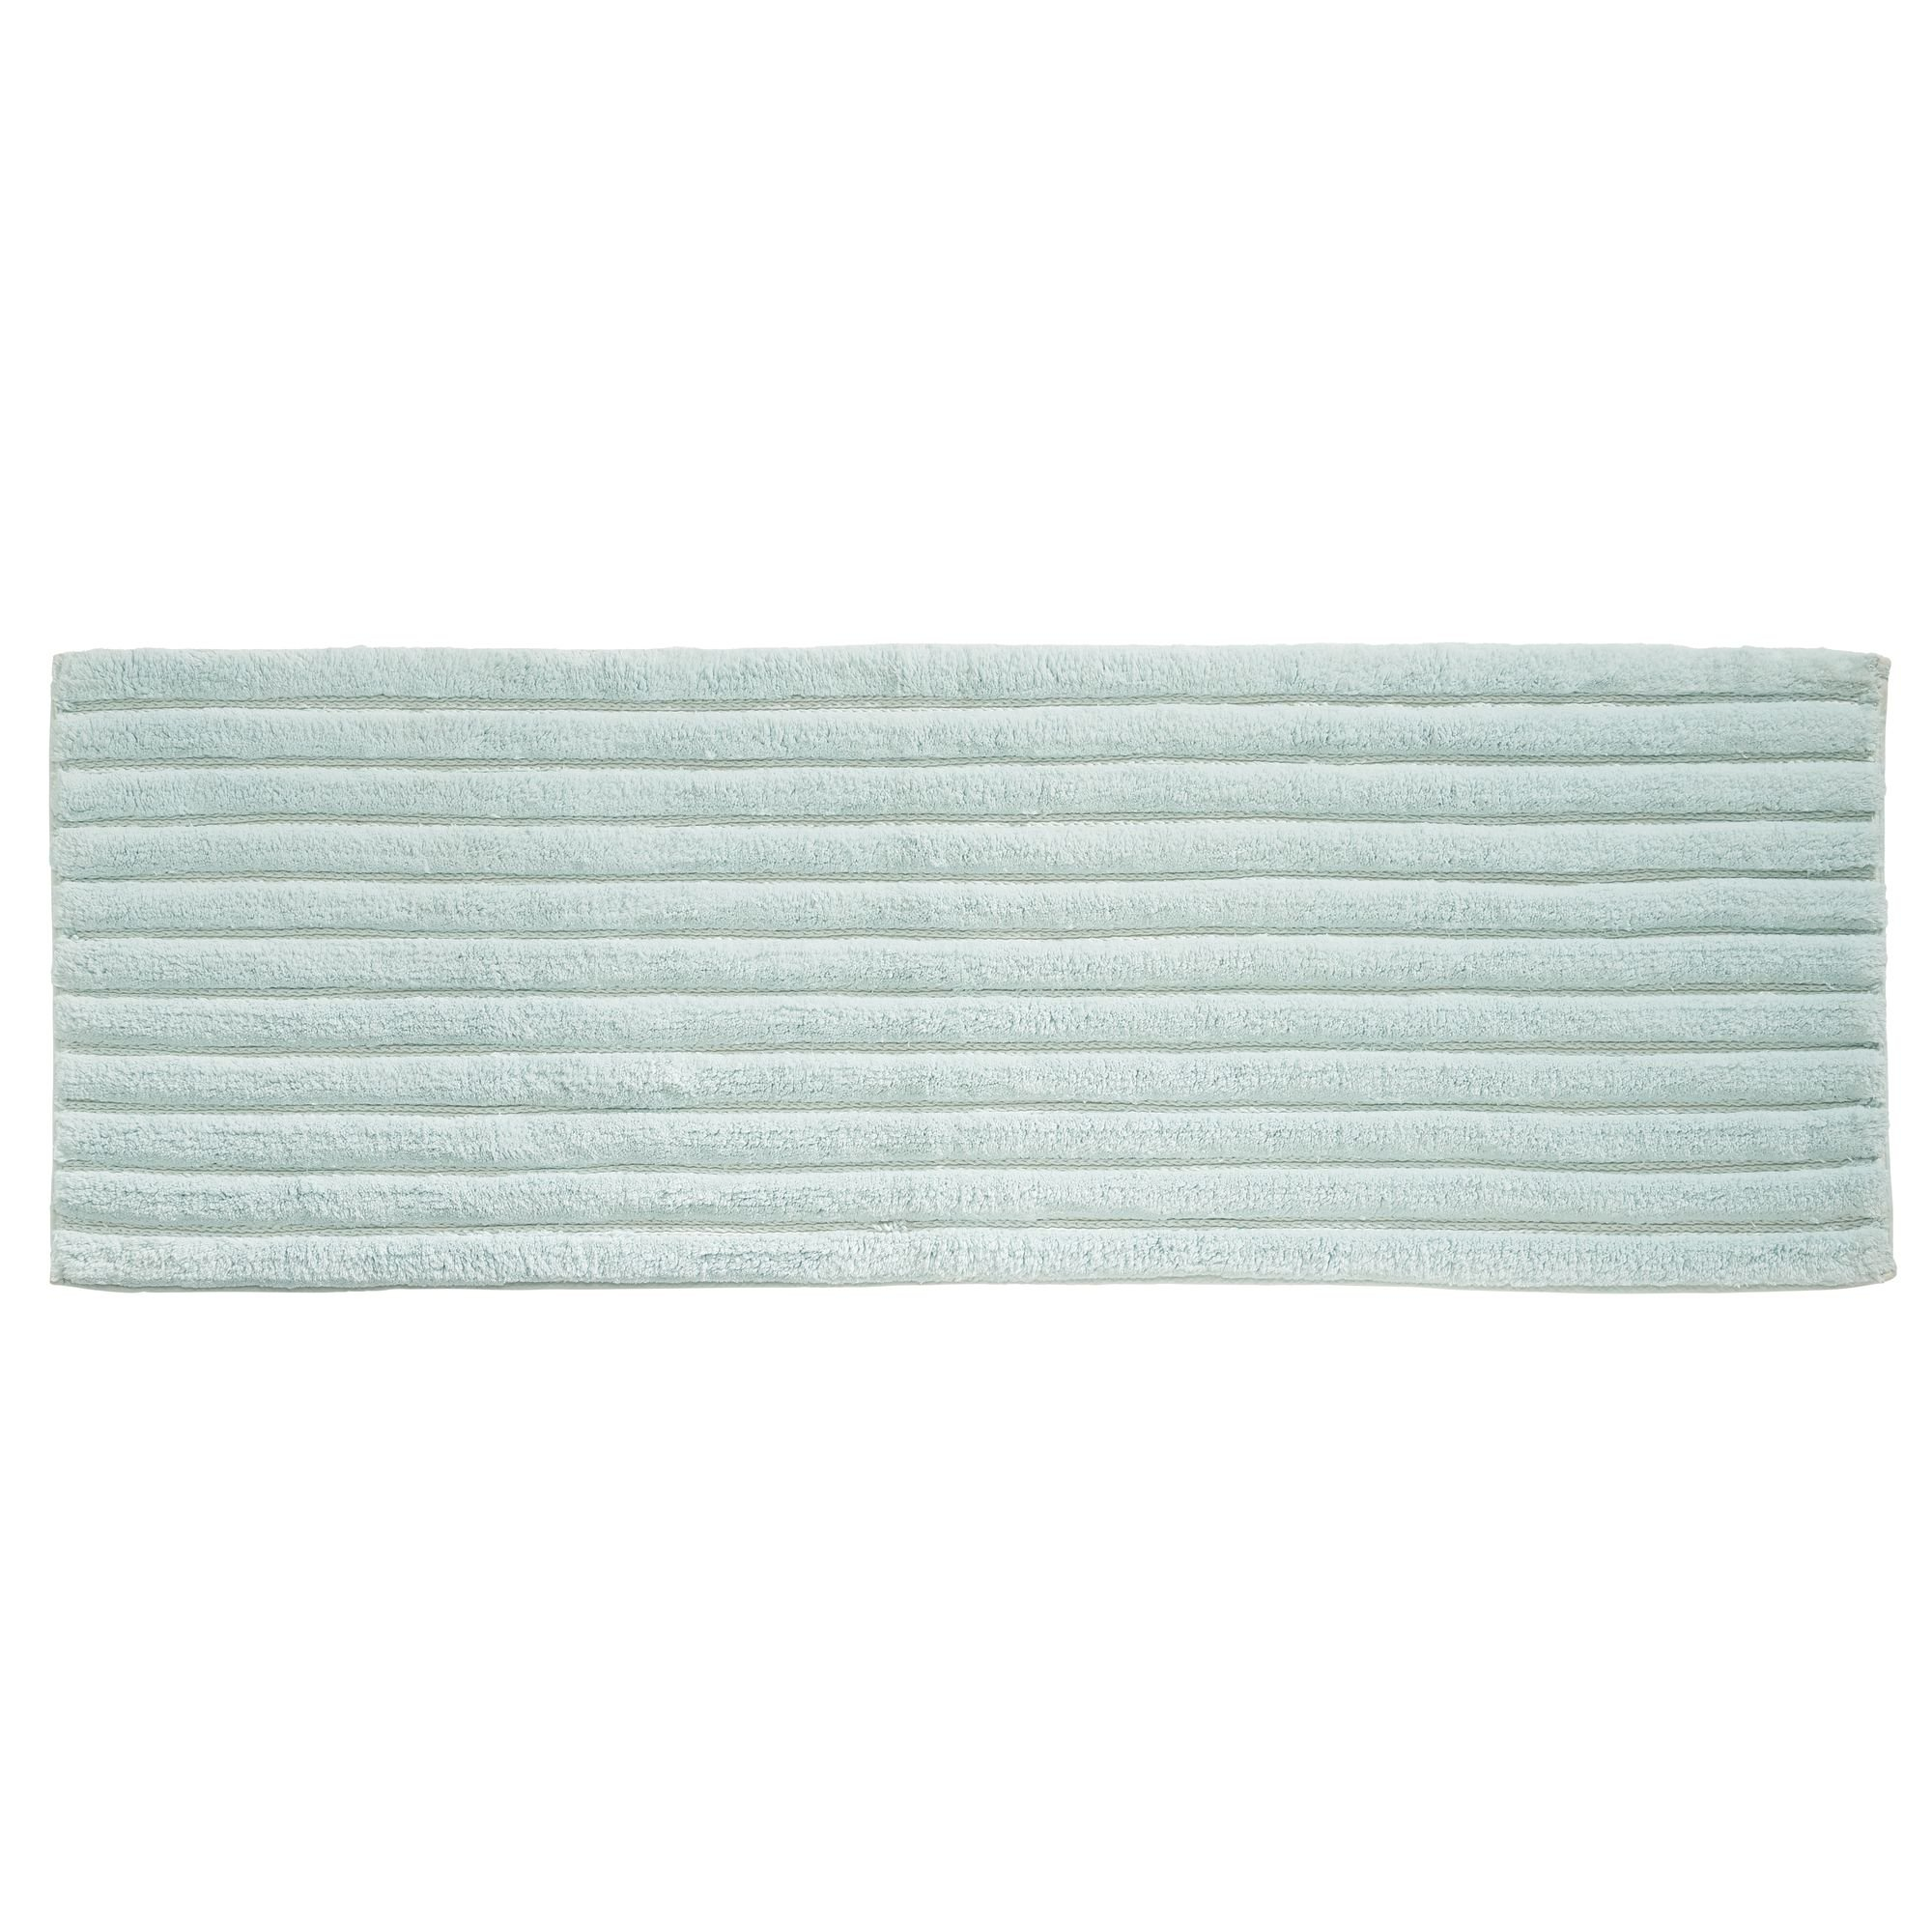 mDesign Soft 100% Cotton Luxury Hotel-Style Rectangular Spa Mat Rug, Plush Water Absorbent, Ribbed Design - for Bathroom Vanity, Bathtub/Shower, Machine Washable - Long Runner, 60'' x 21'', Water Blue